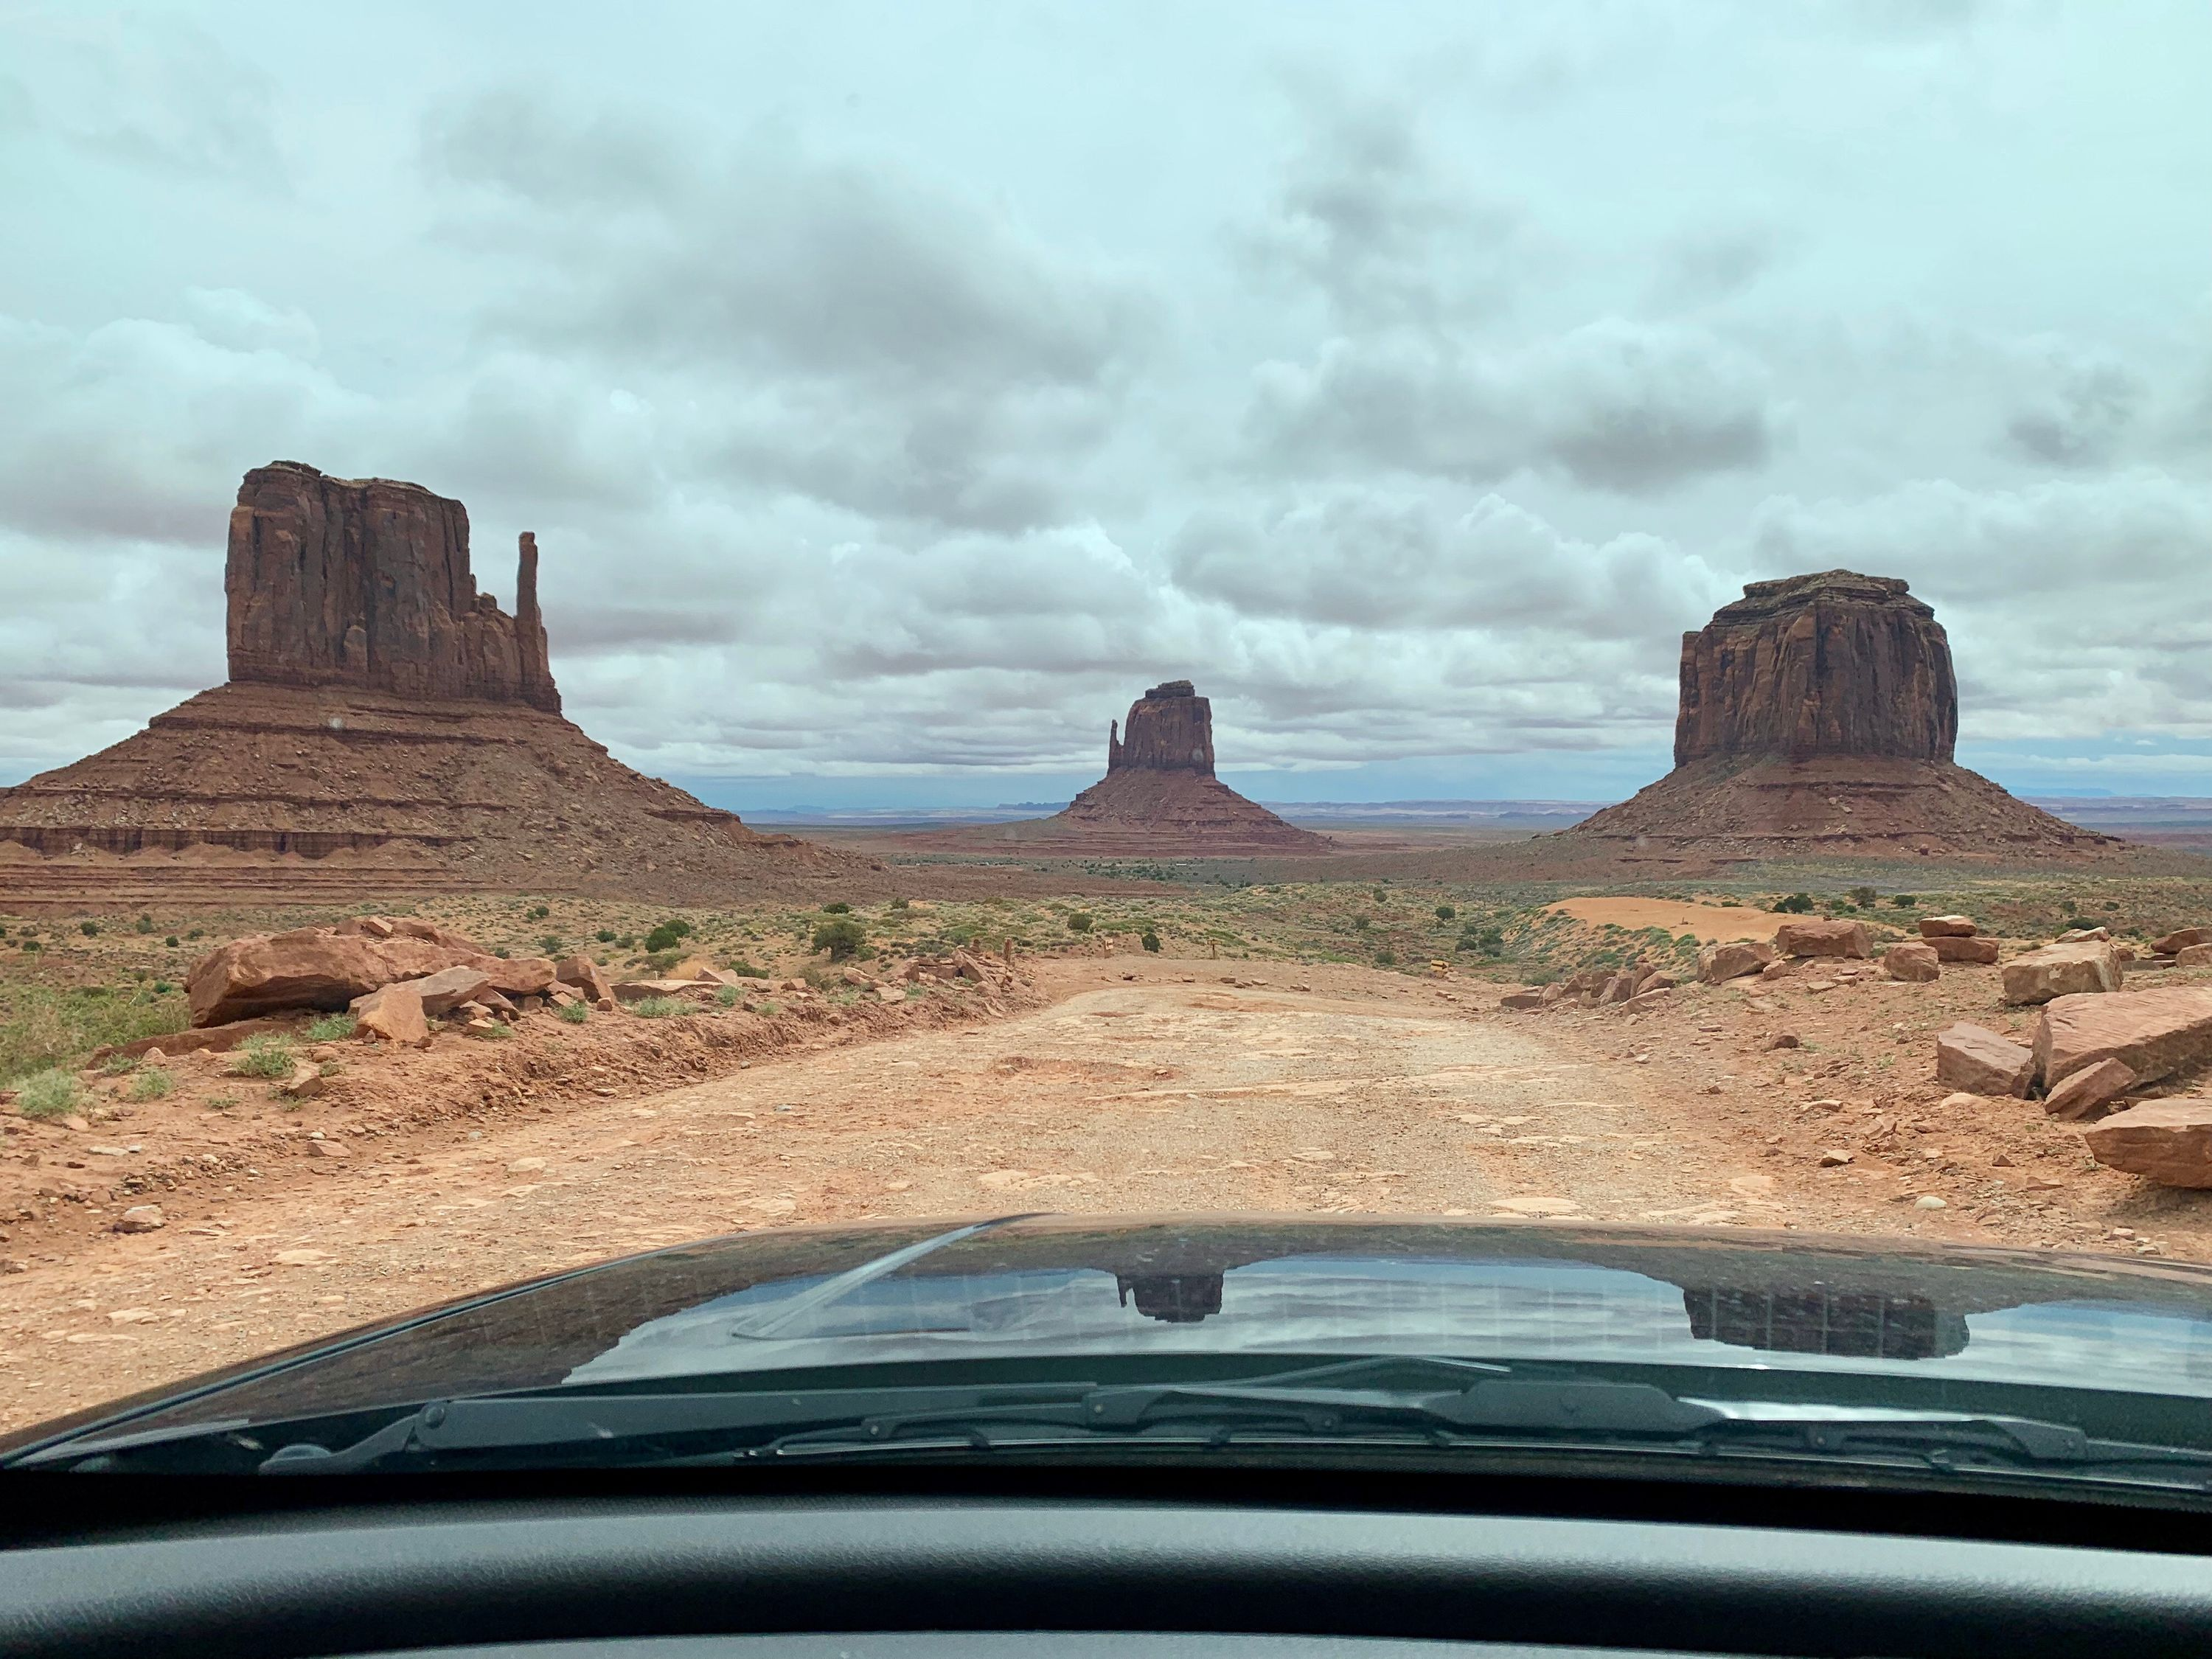 POV image while driving through Monument Valley